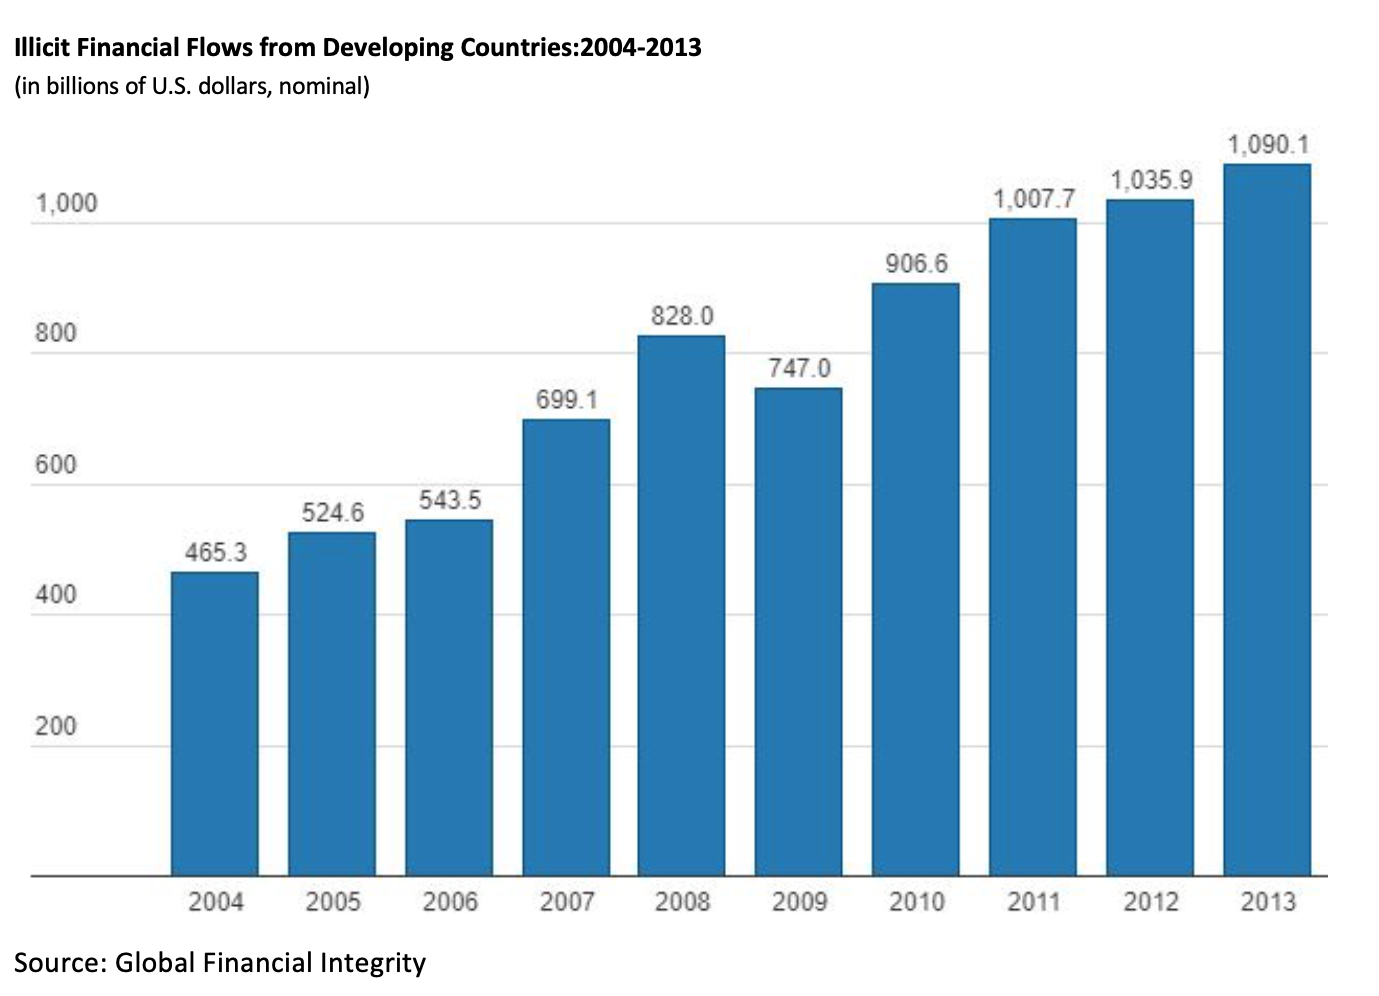 Illicit Financial Flows from Developing Countries: 2004-2013